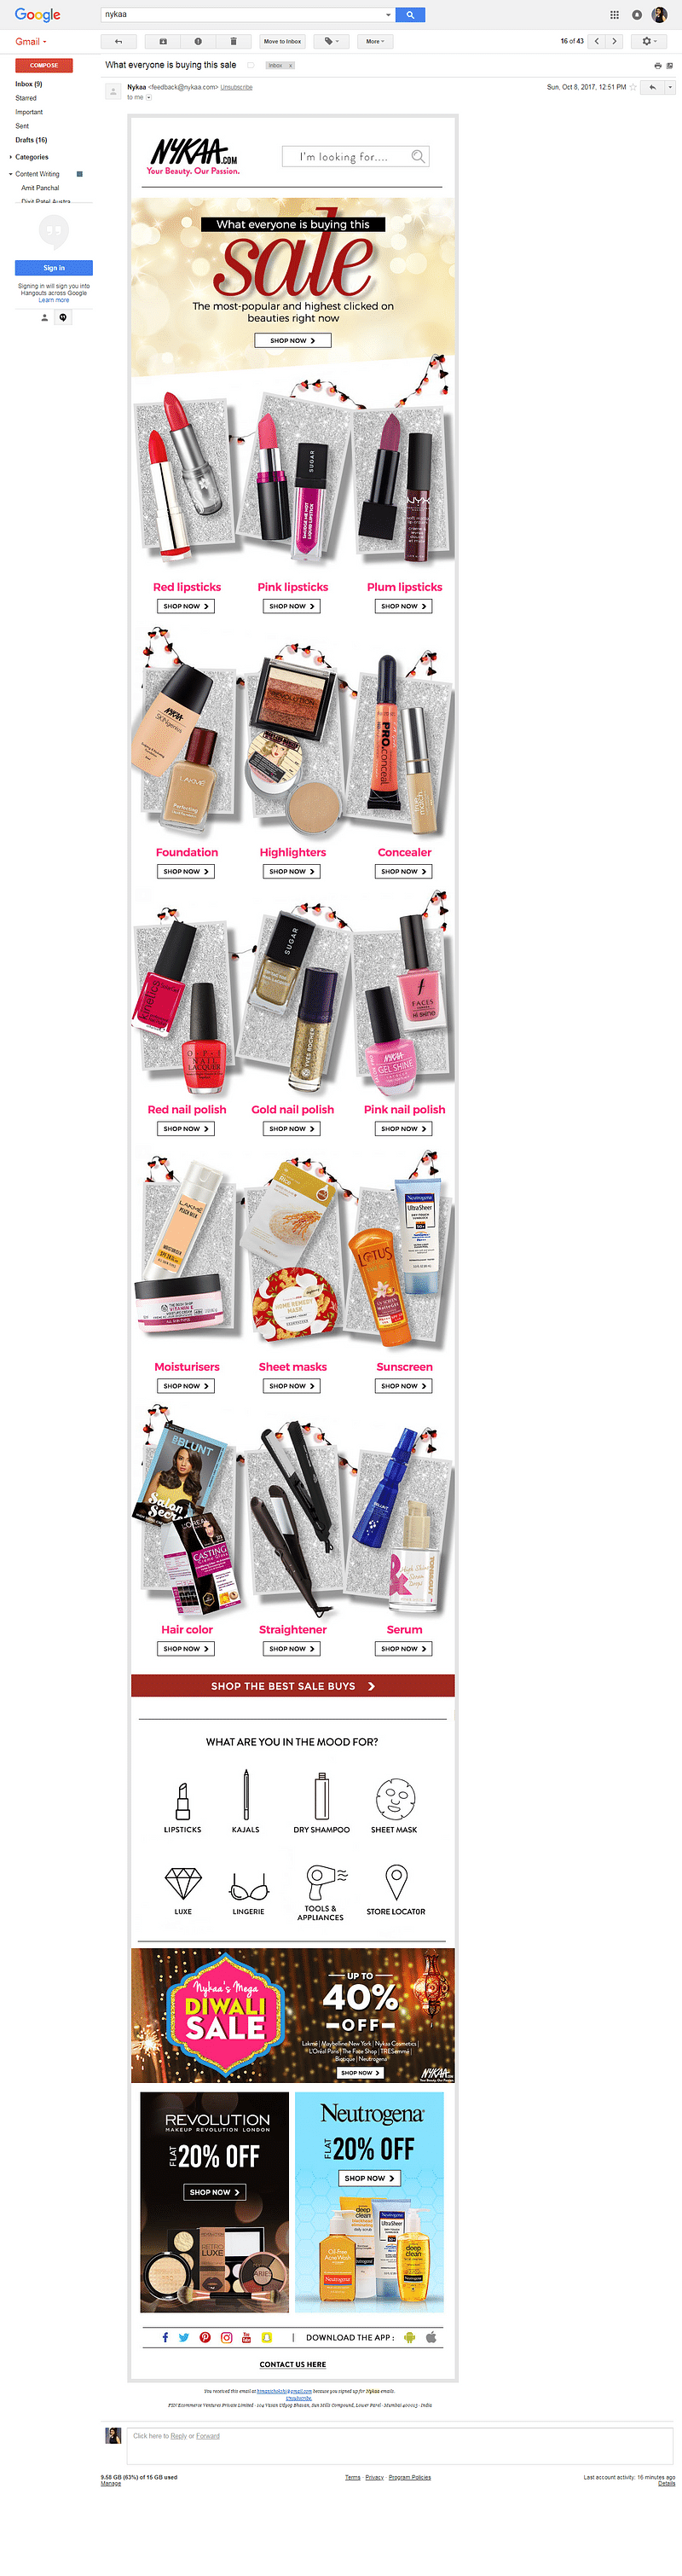 Not so personalized email - Nykaa